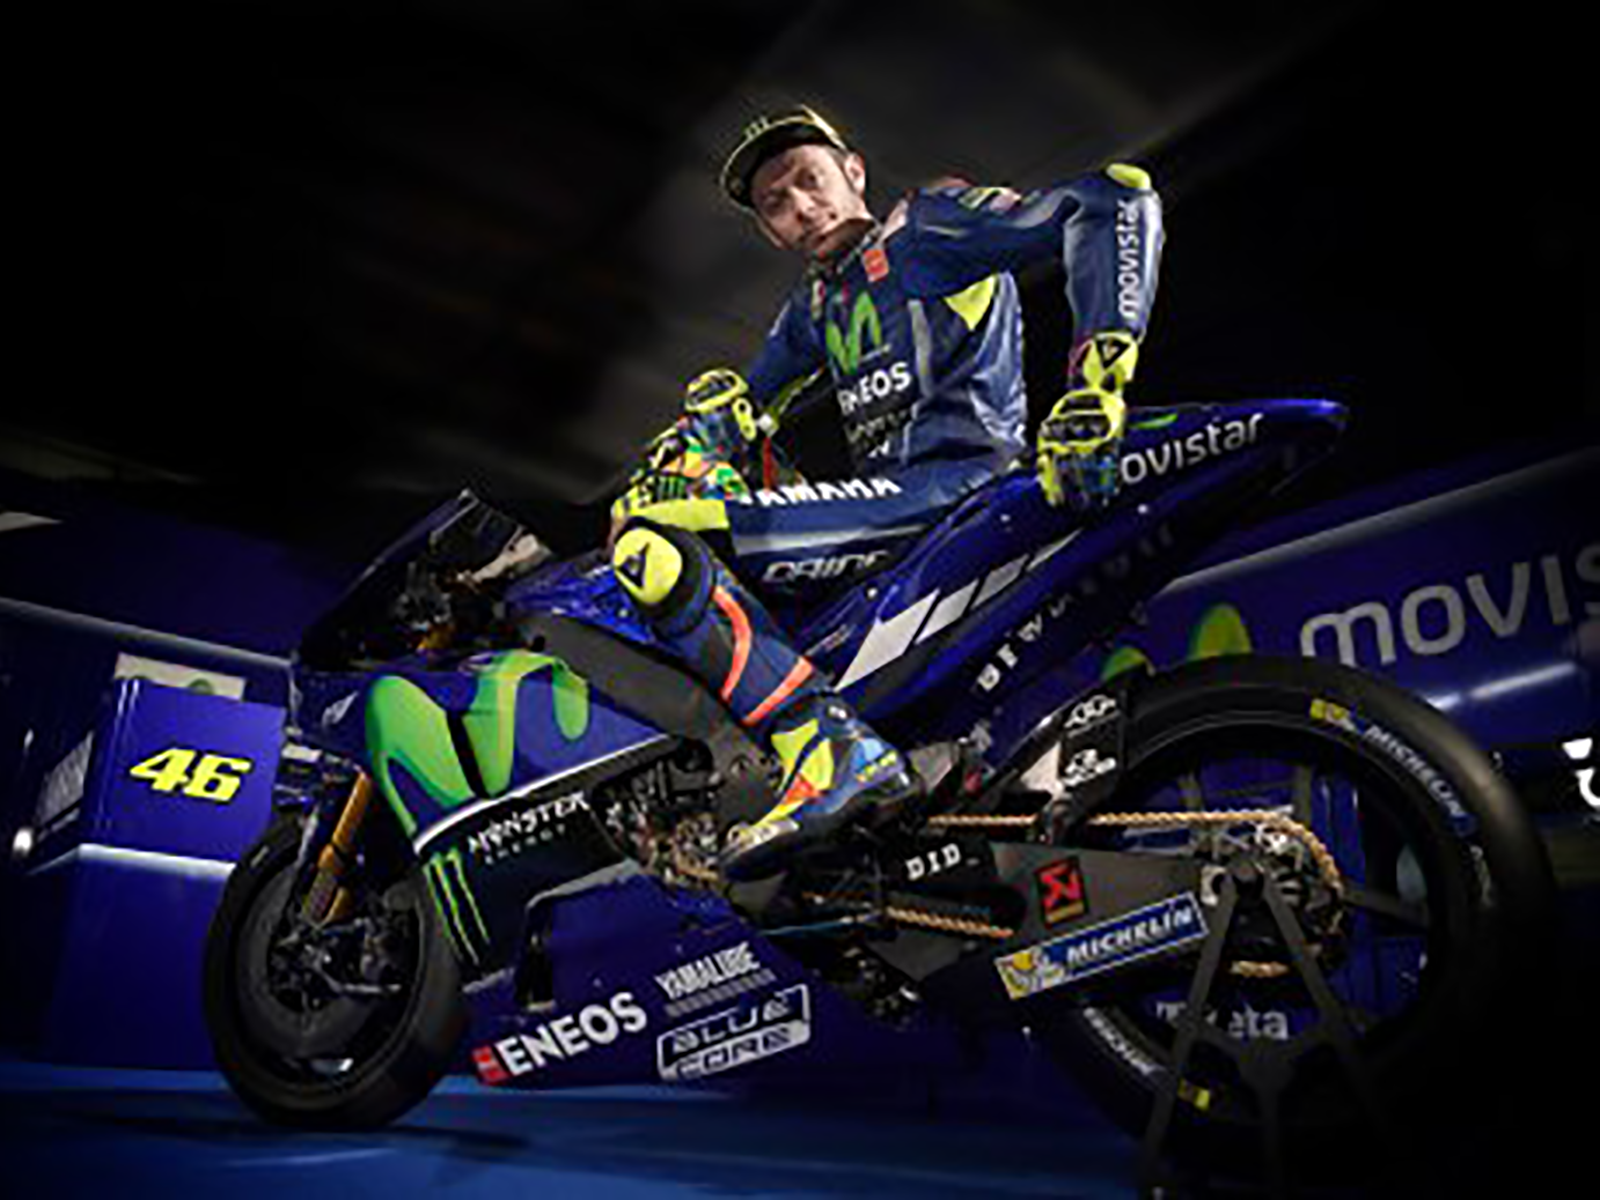 Valentino Rossi « Download Blackberry, iPhone, Desktop and Android Wallpapers – Wallpapers Pond